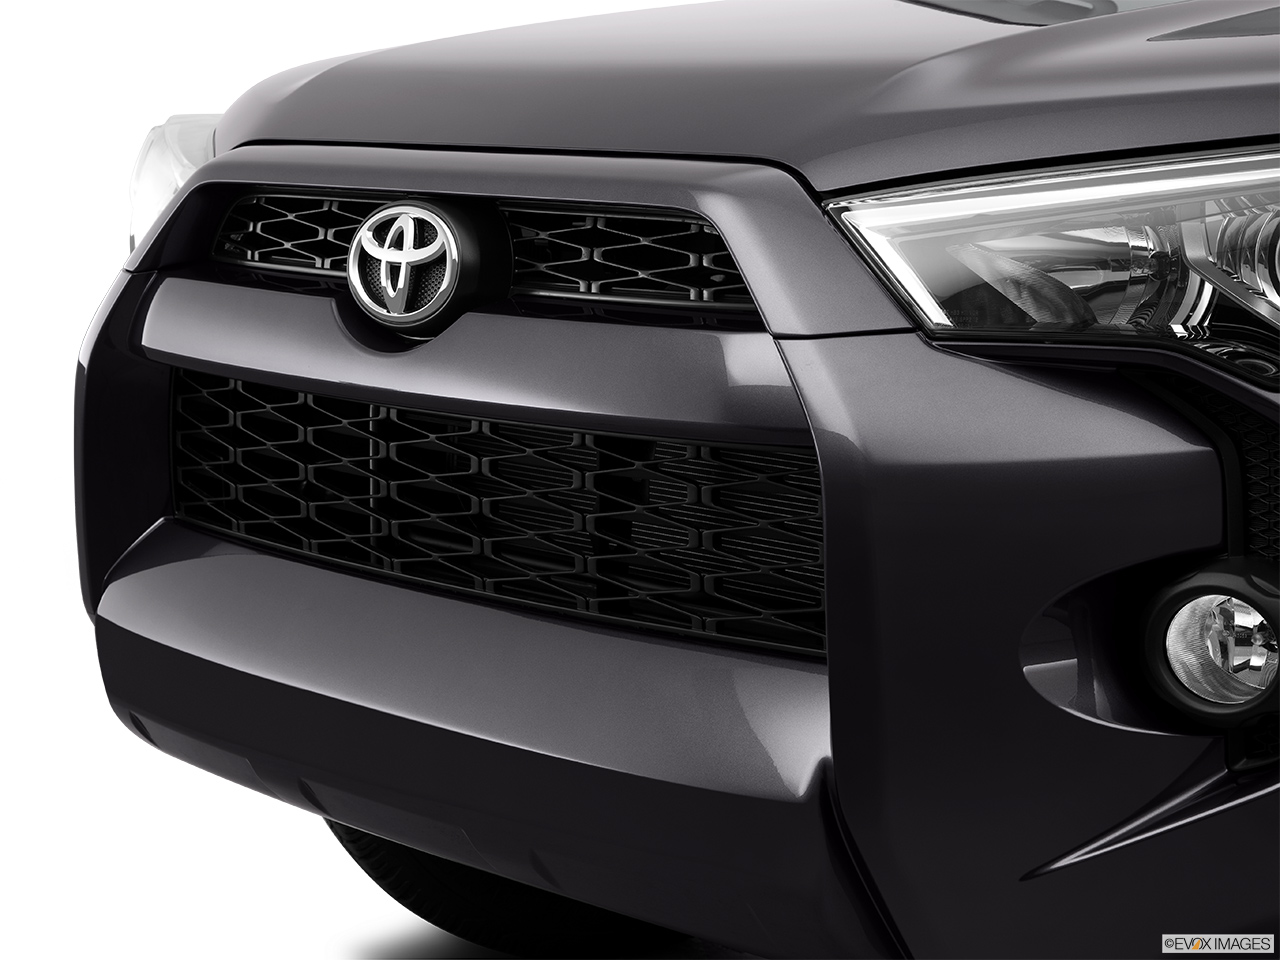 Picture Of Cars >> 2015 Toyota 4Runner 4WD 4 Door V6 TRD Pro - Close up of Grill